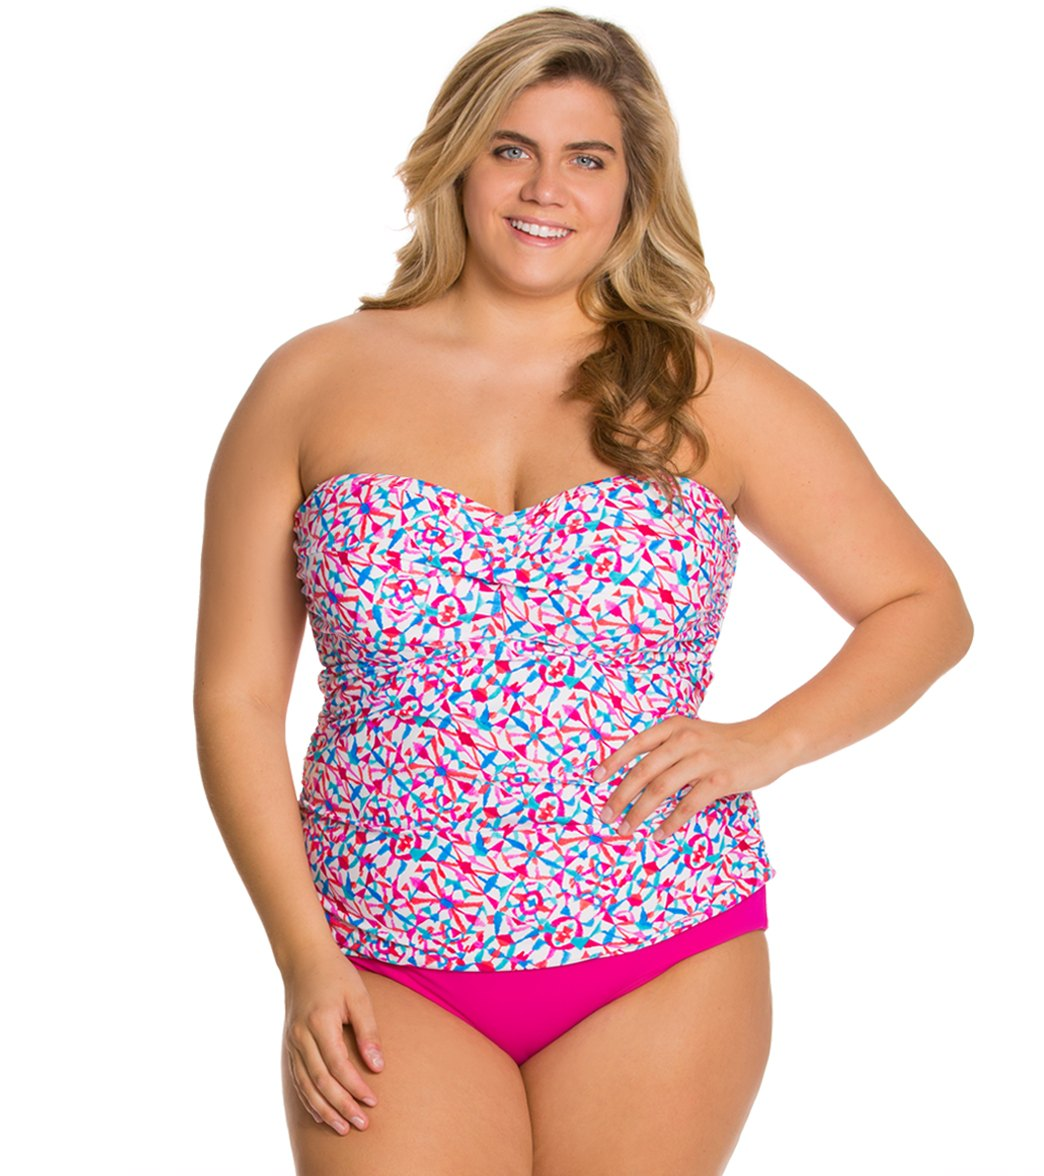 128a46ff5a97d Sunsets Plus Size Surfside Shirred Bandeau Tankini Top (D DD) at ...